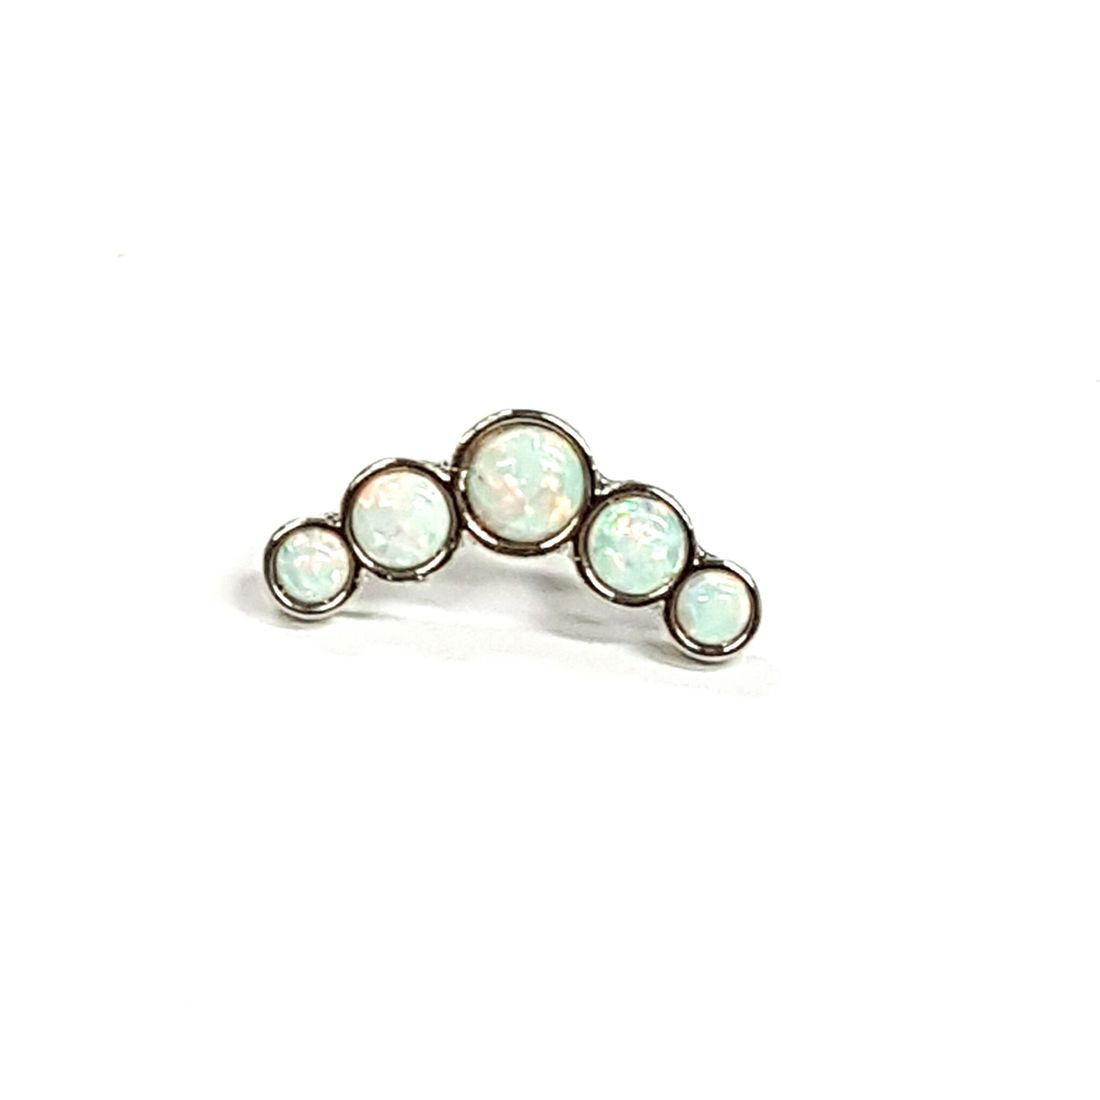 1.2mm x 8mm 5 stone opal ball back bar   available at Kazbah online and our Leicester City Centre Shop